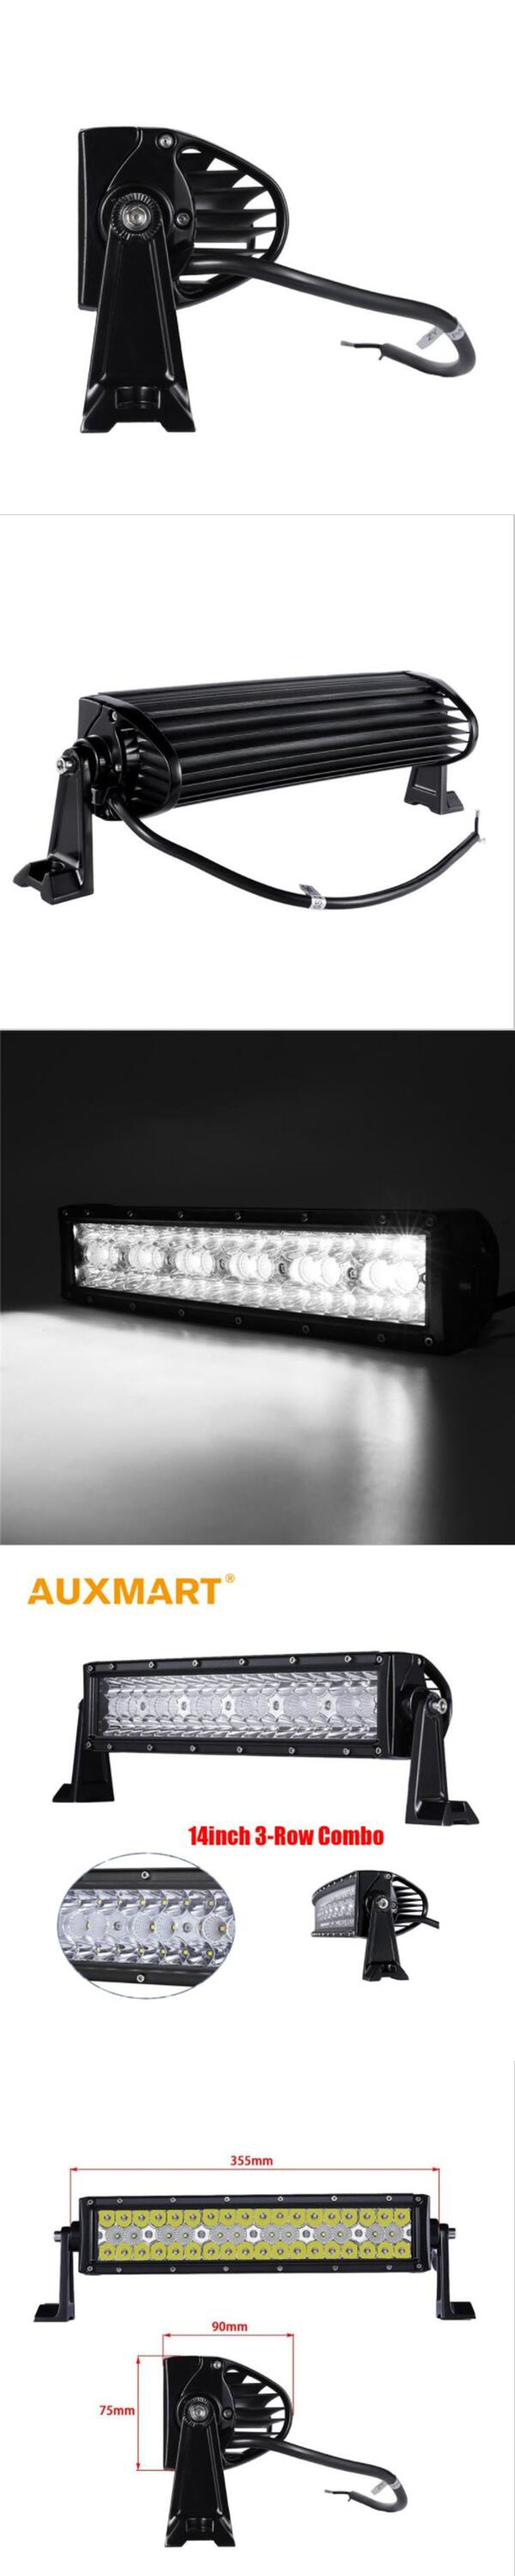 """Auxmart 14"""" LED Car Light Work Bar 3 Row 144W Offroad Driving Combo Beams fit Pickup Tractor Truck SUV 4X4 Wagon jeep"""